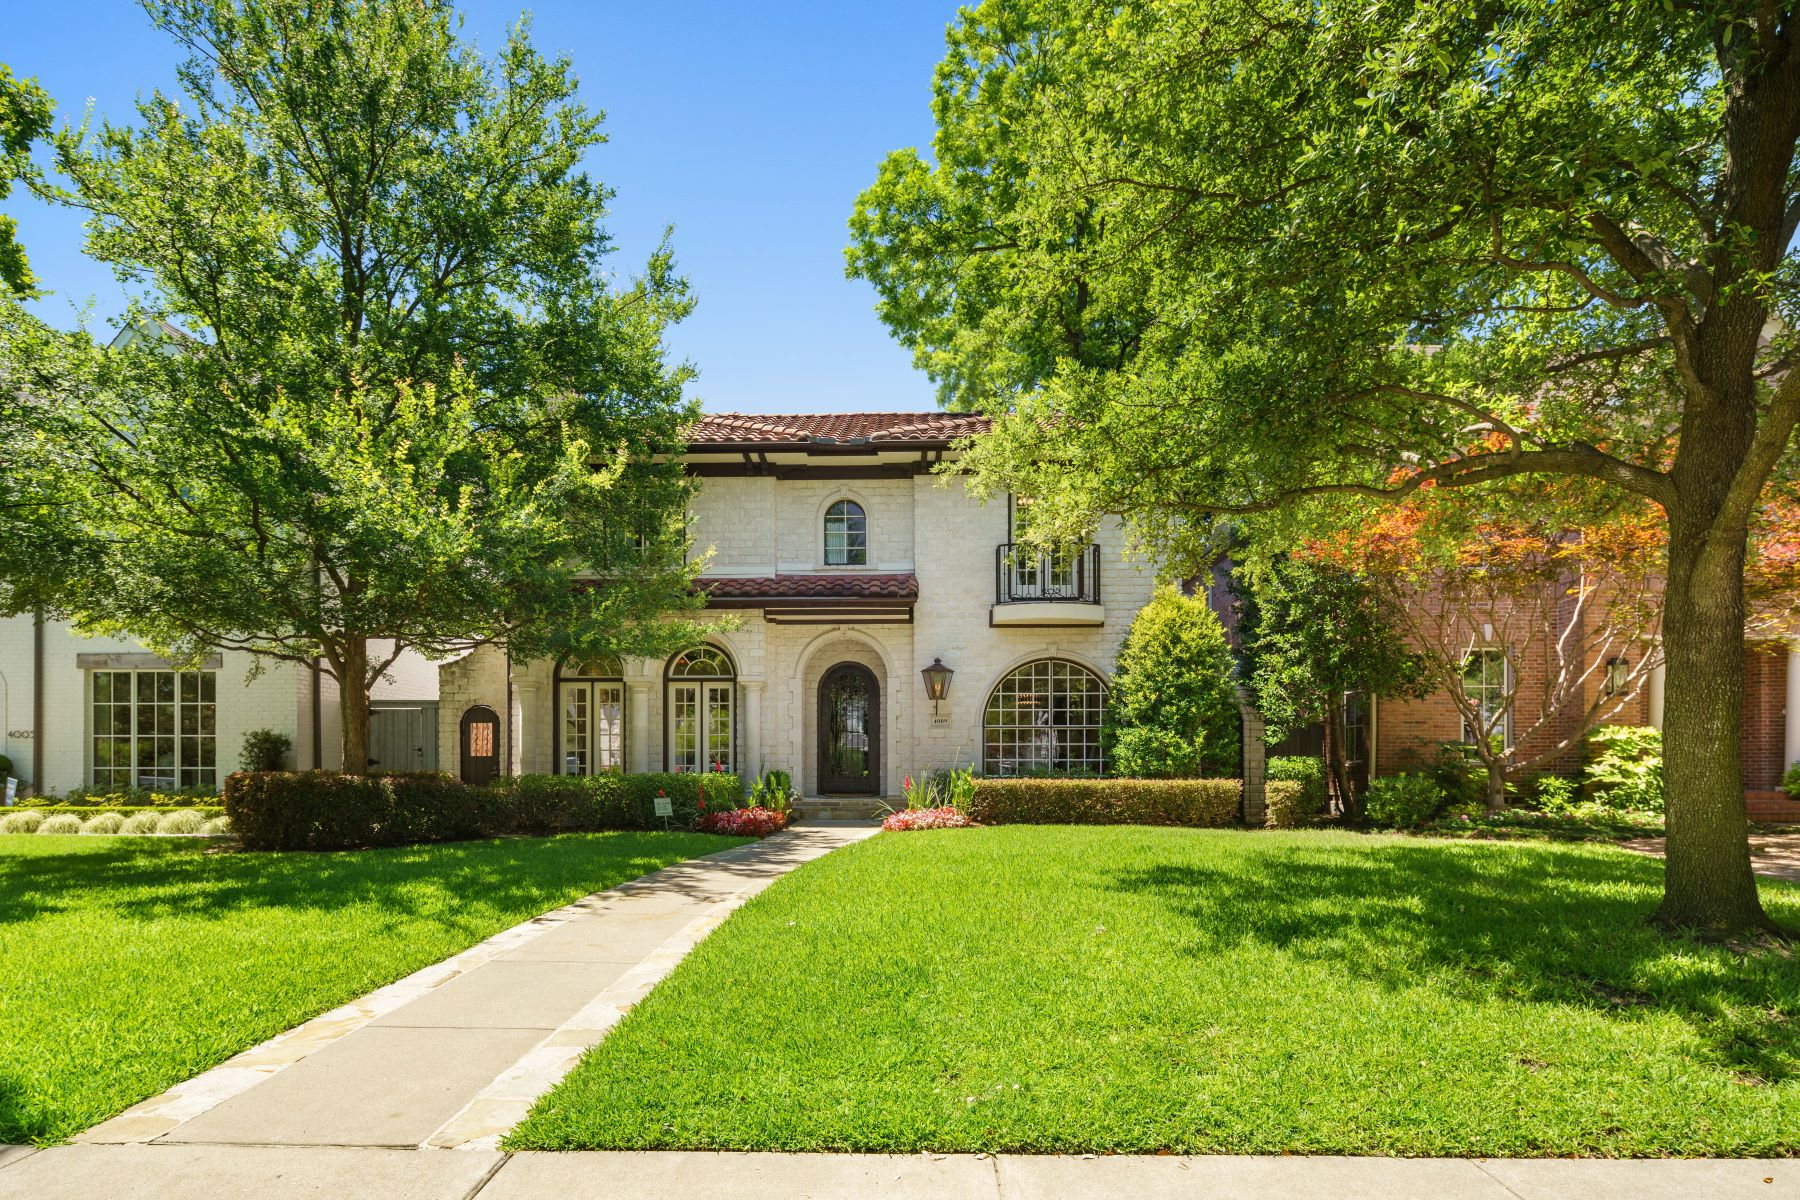 Single Family Homes for Sale at University Park in the Fairway 4009 Hanover Street University Park, Texas 75225 United States